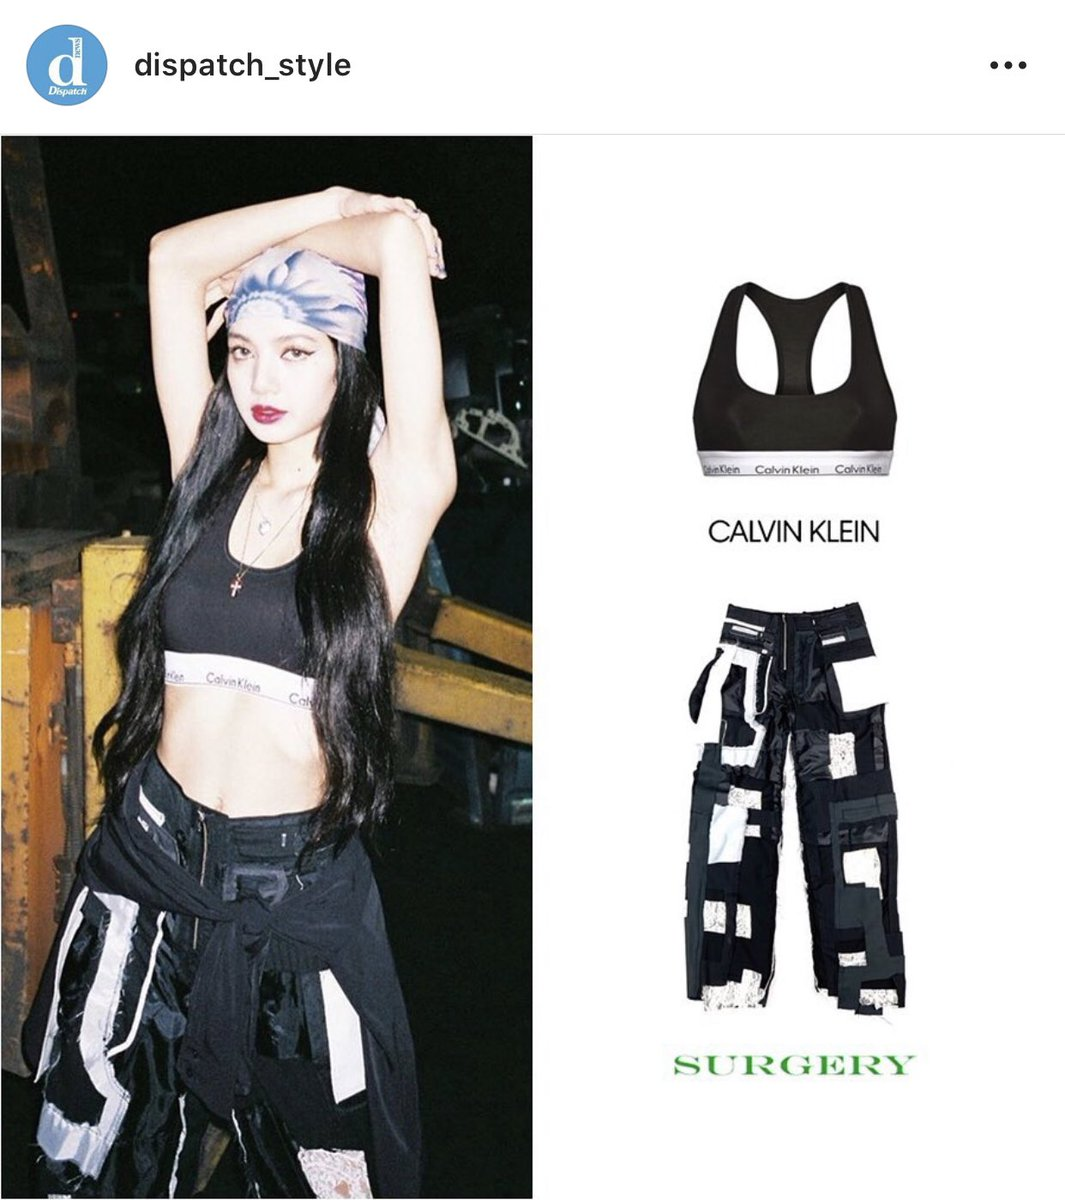 [IG] 200714  dispatch_style posted LISA's LILIDANCE4 outfit on their page.   🔗   - Admin KL  #LISA #리사 #LALISA #BLACKPINK @ygofficialblink @BLACKPINK